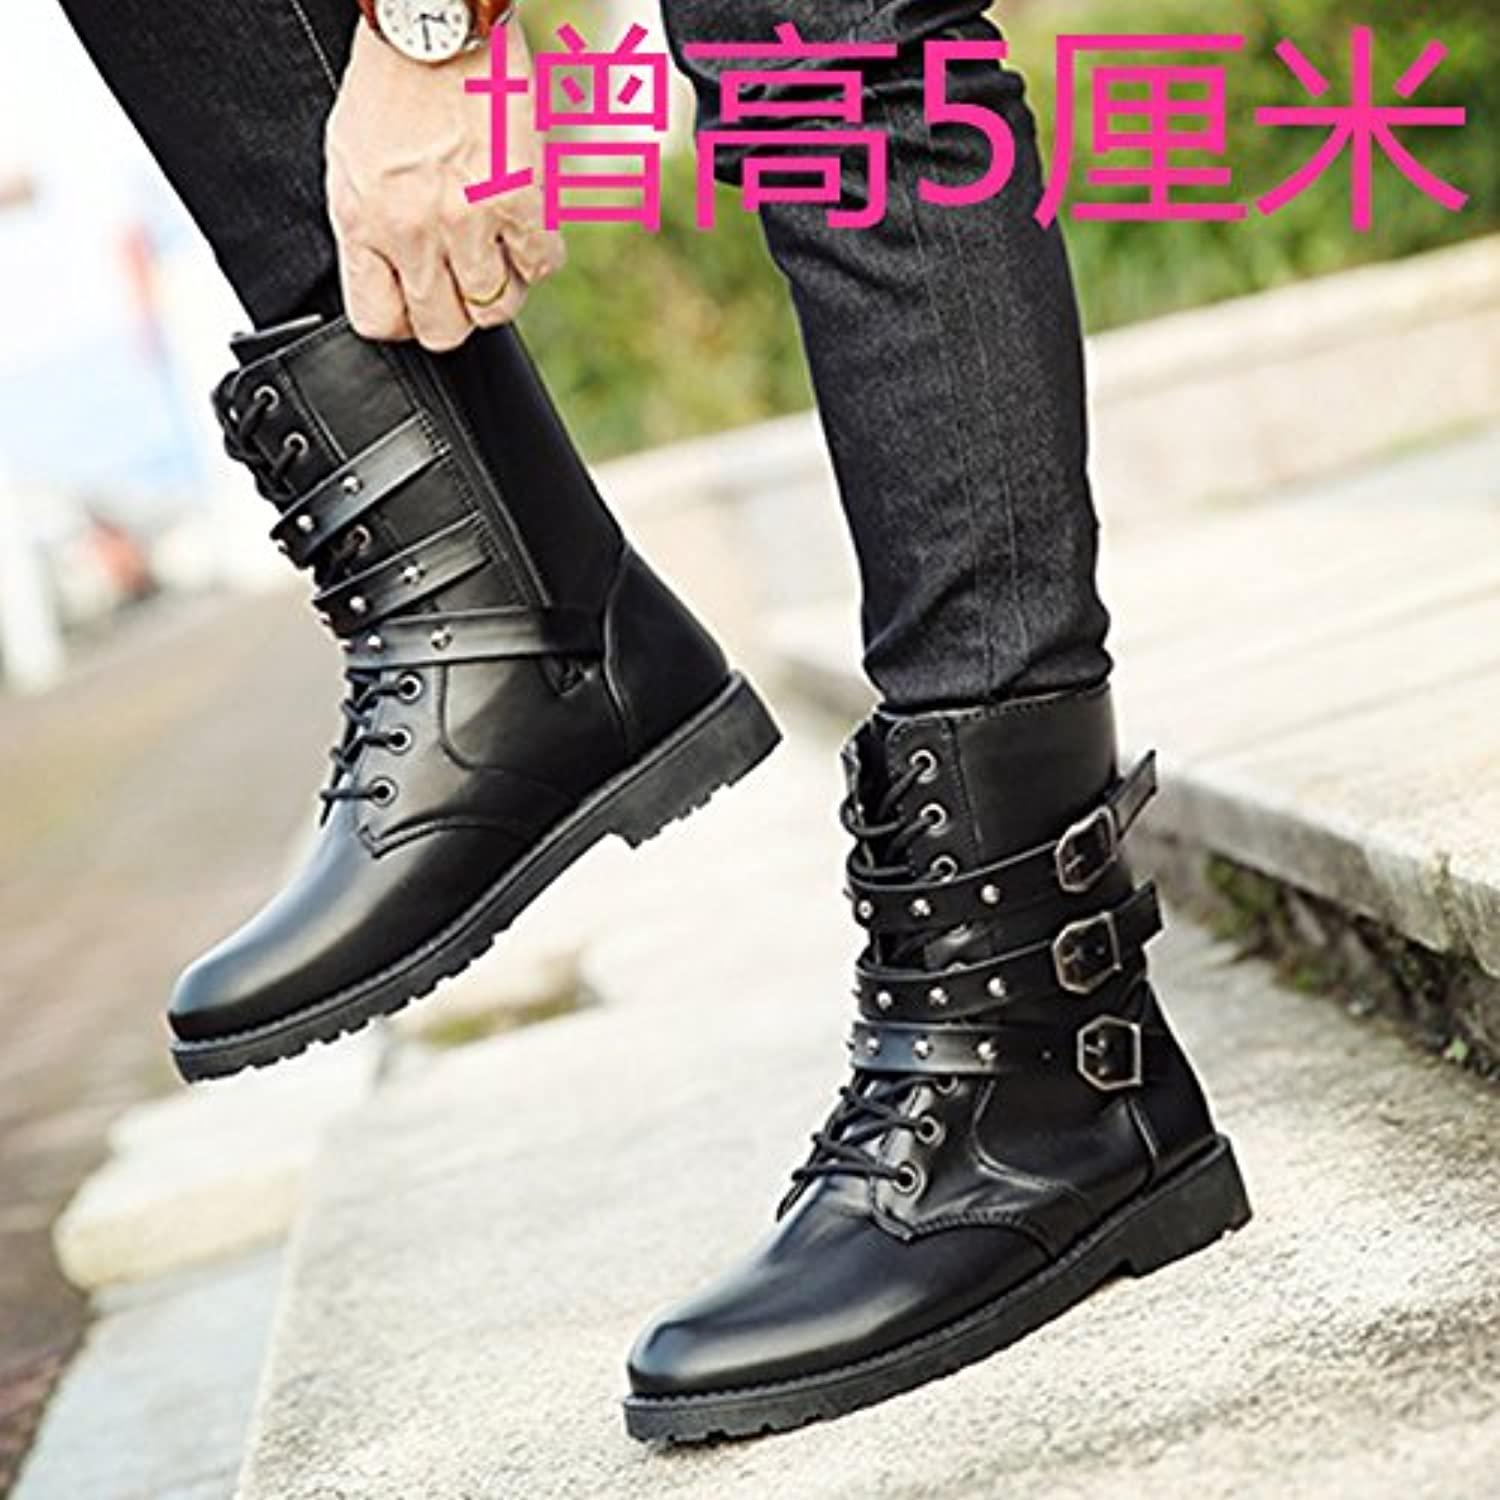 GUNAINDMX Spring and Autumn men's shoes casual Martin boots tall tube